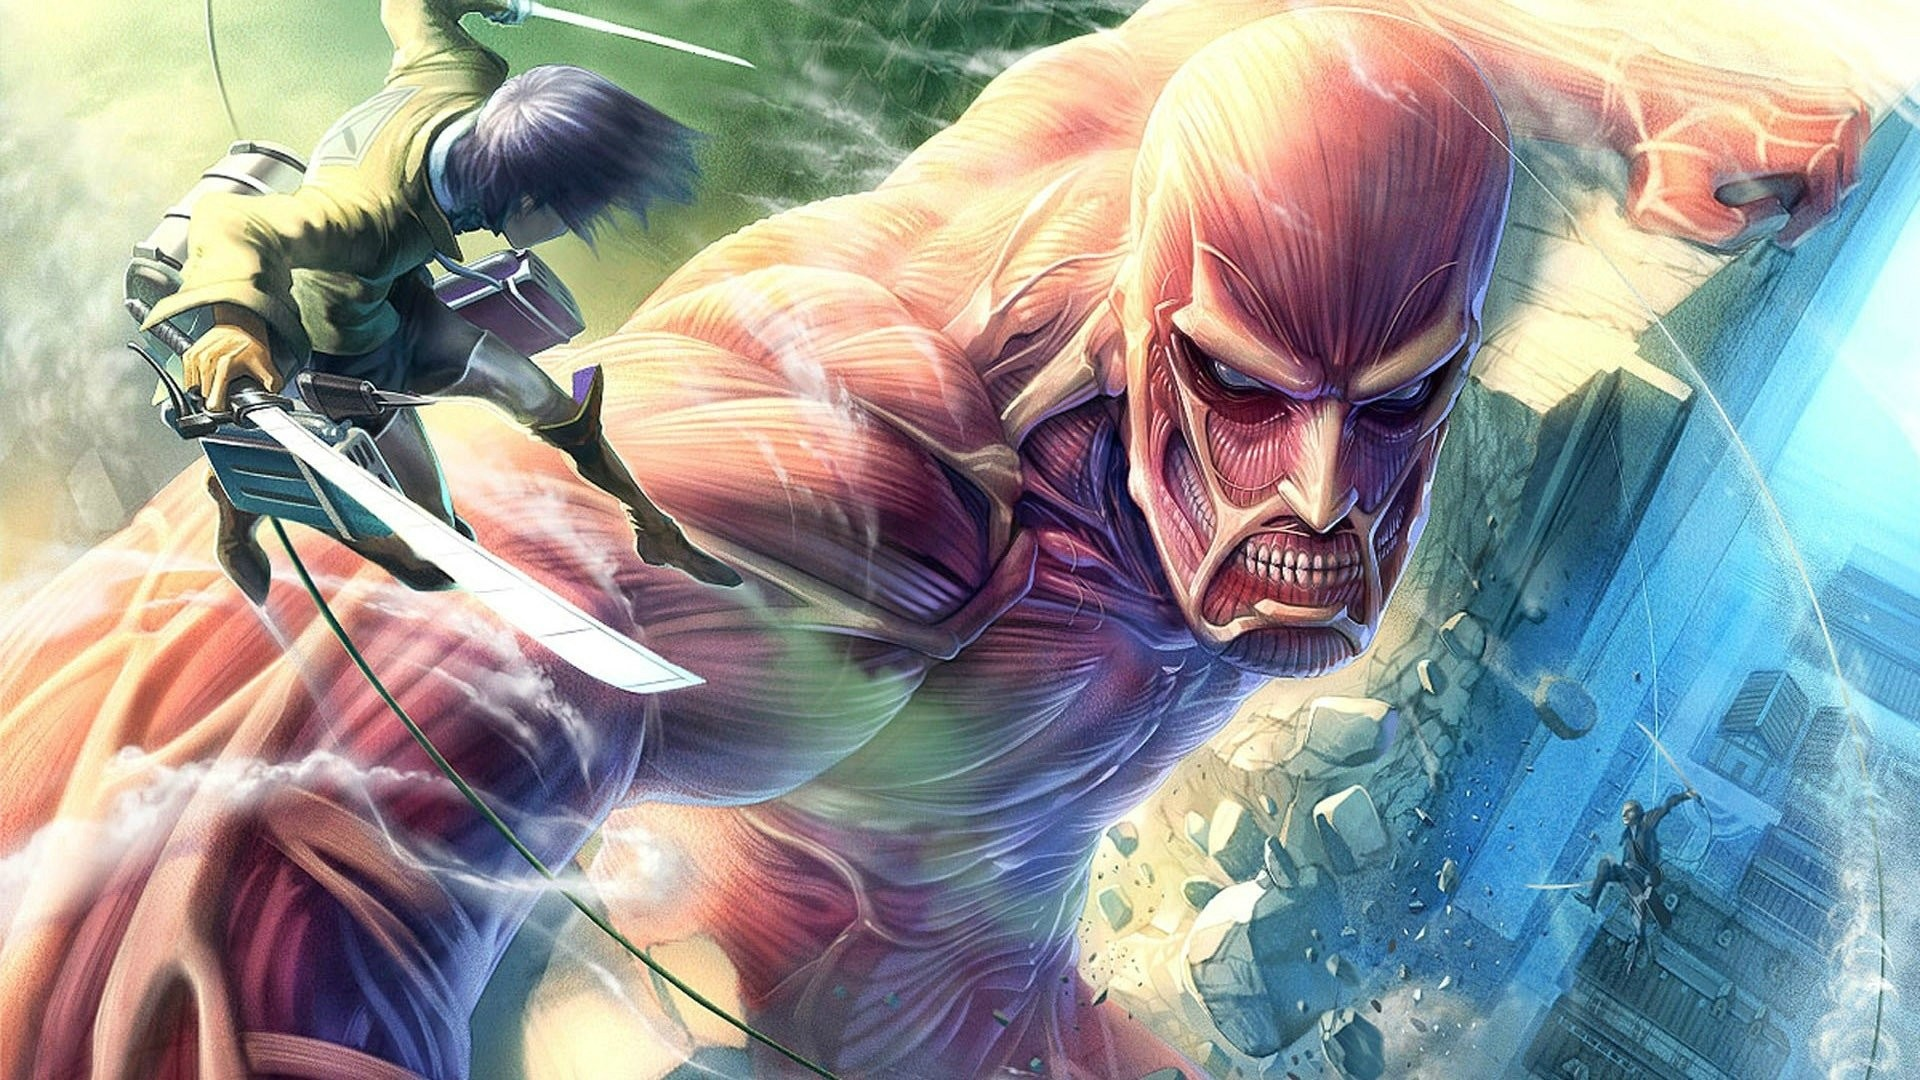 1920x1080 HD Wallpaper | Hintergrund ID:557030.  Anime Attack On Titan